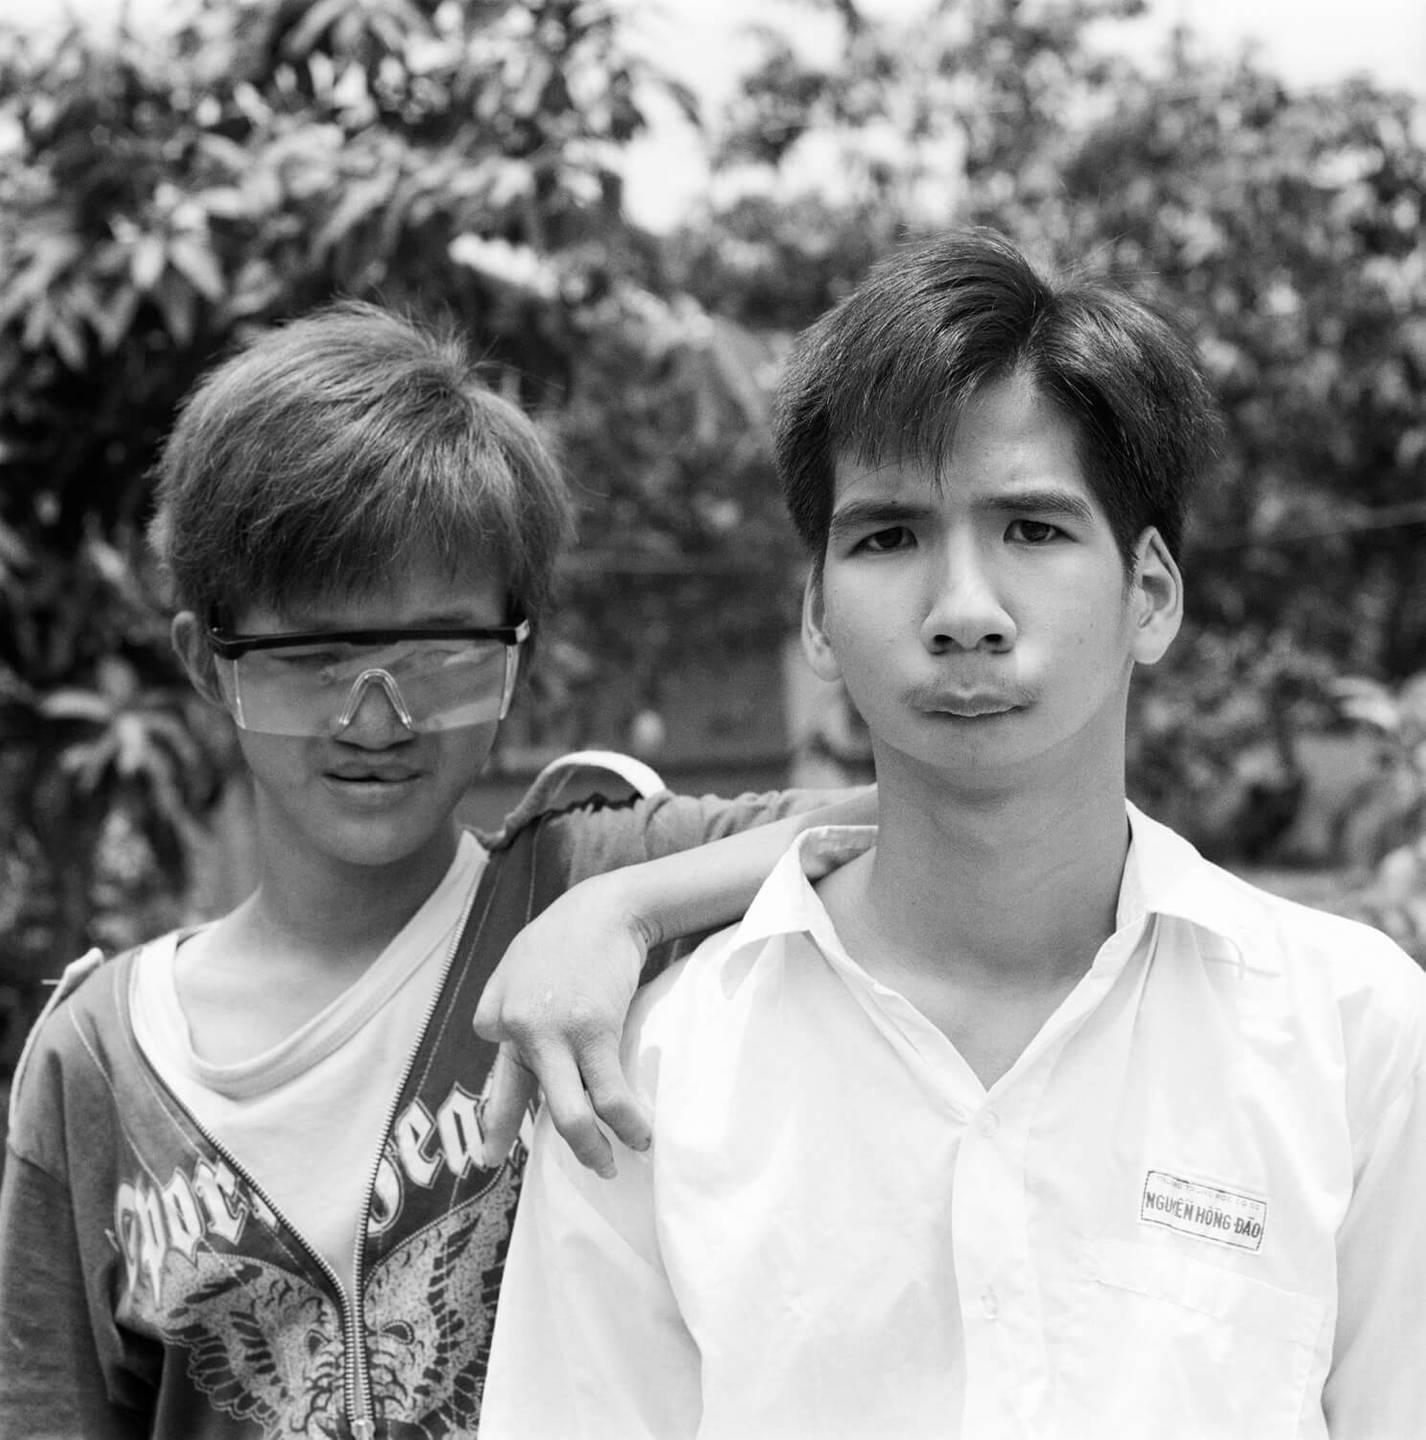 Two young Asian men, both deformed, posing for a portrait outside.